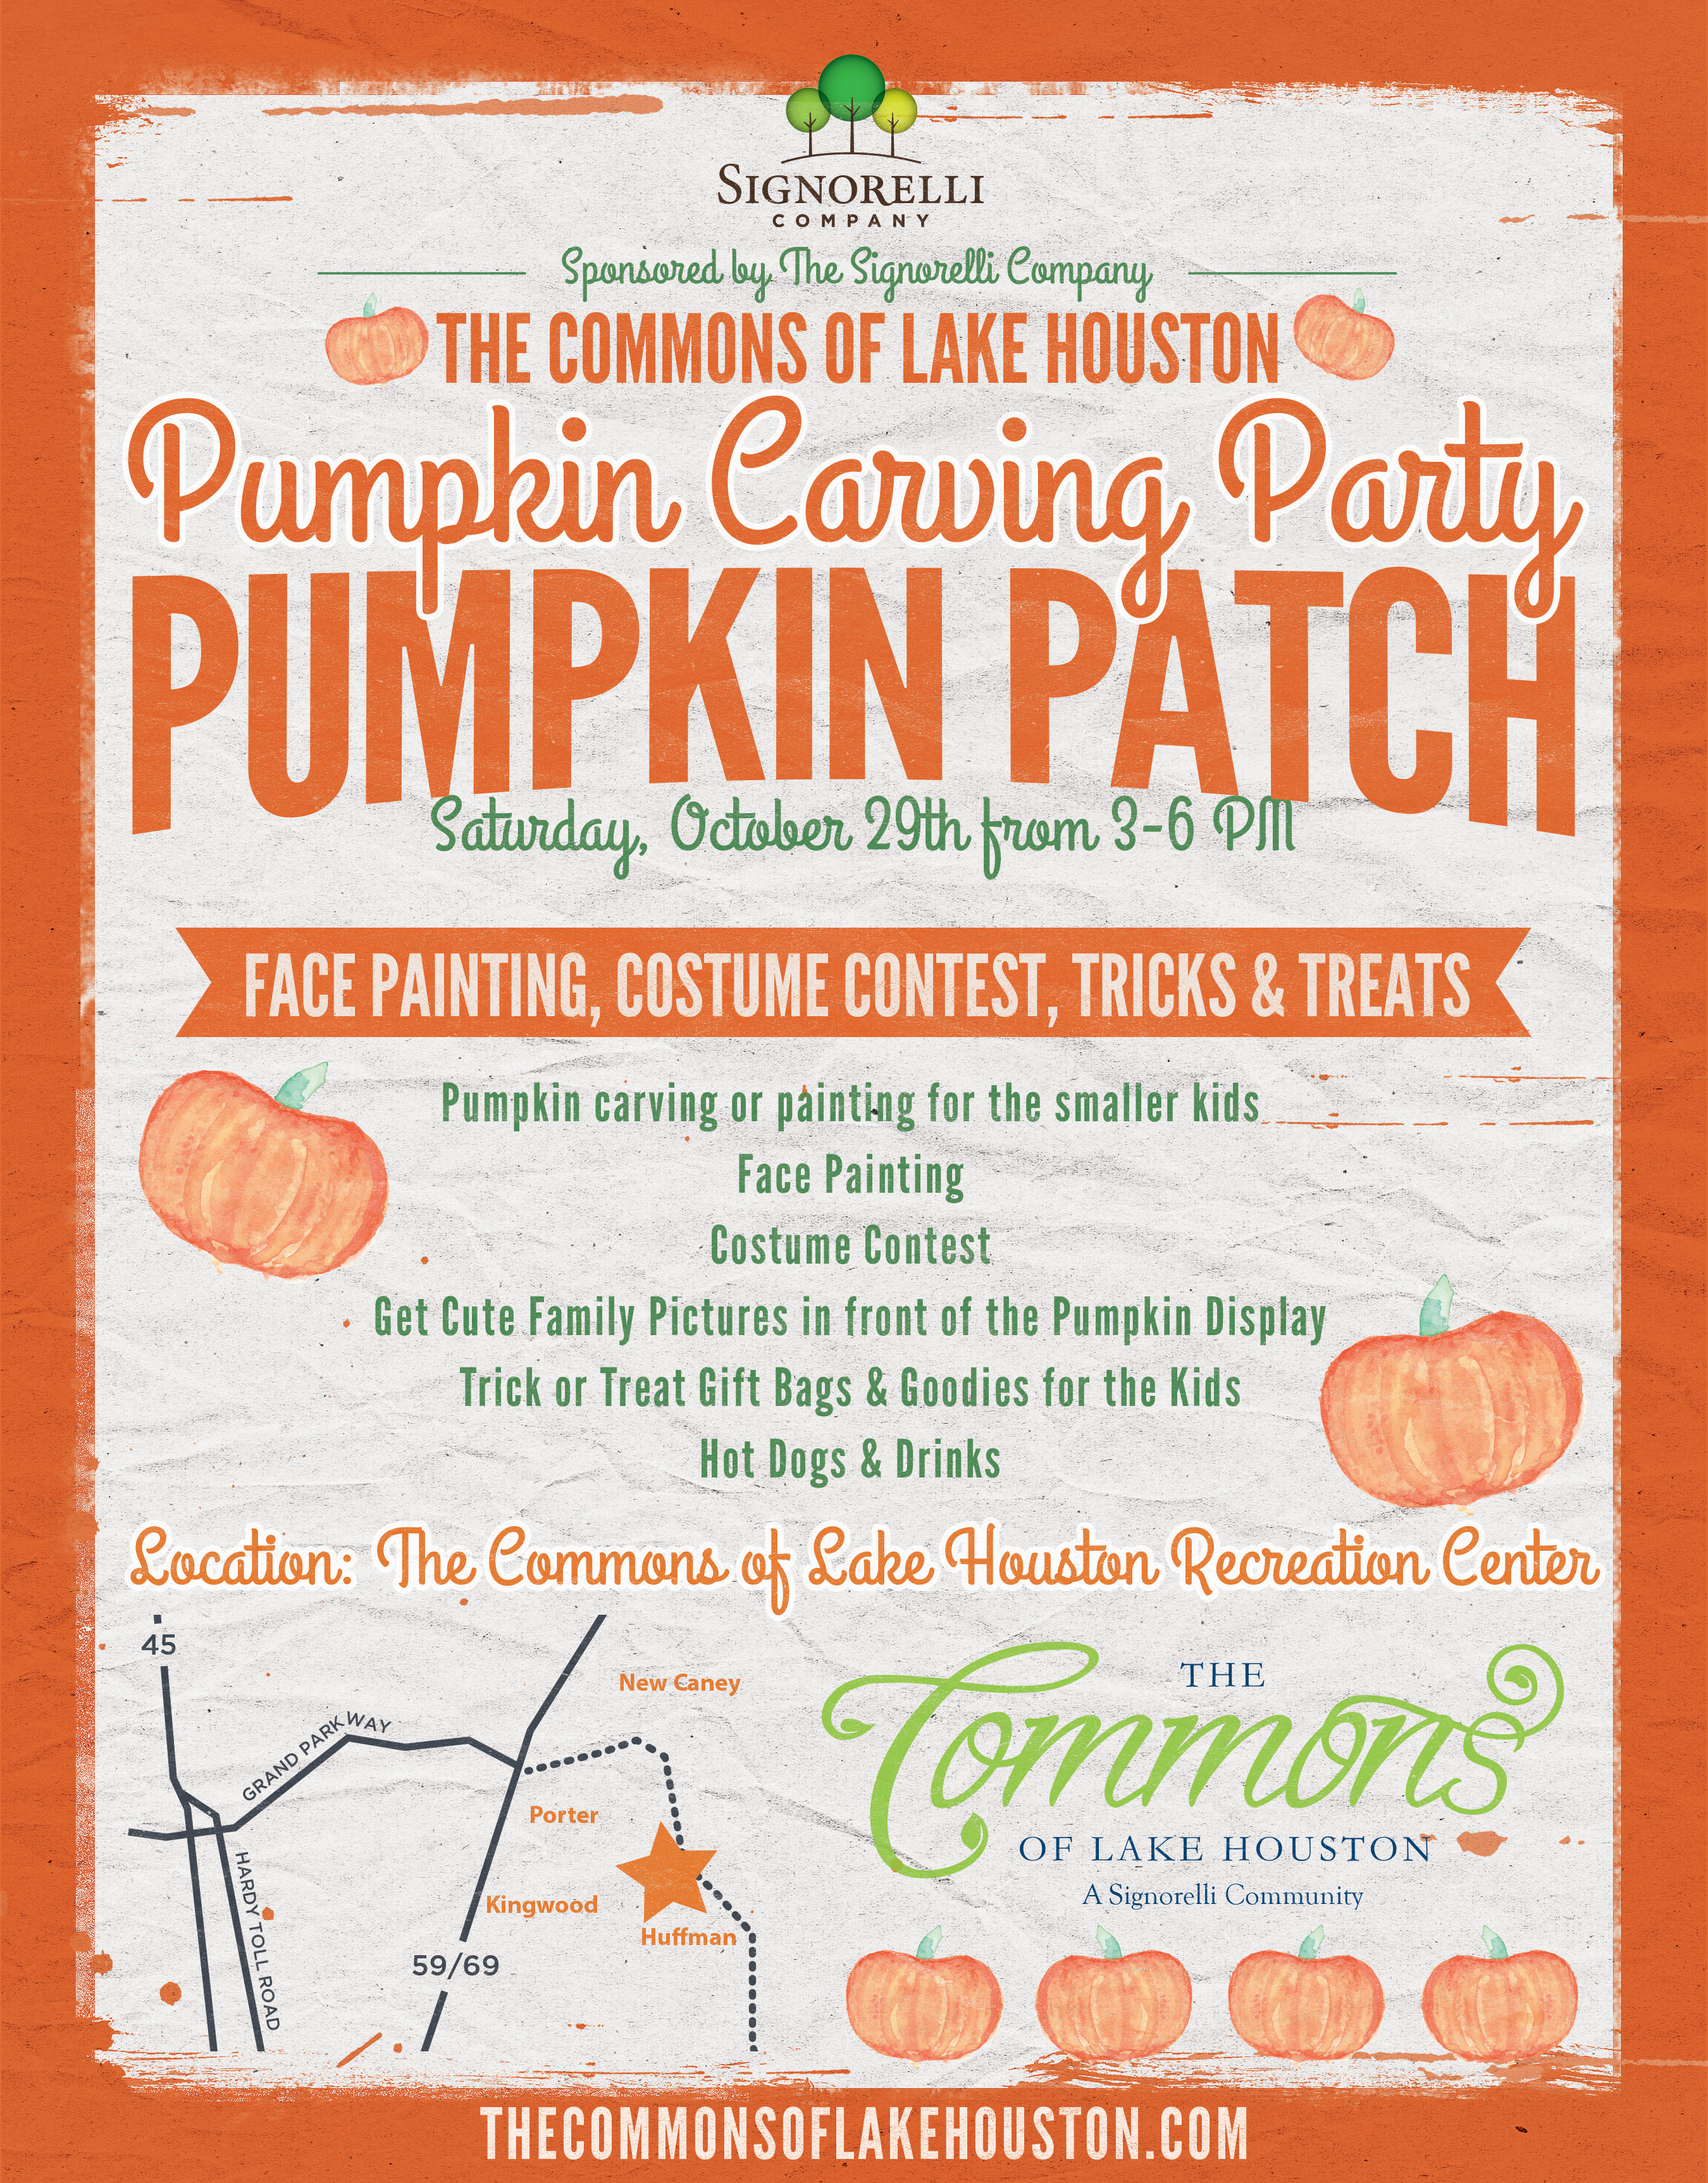 Pumpkin Patch Party in The Commons of Lake Houston